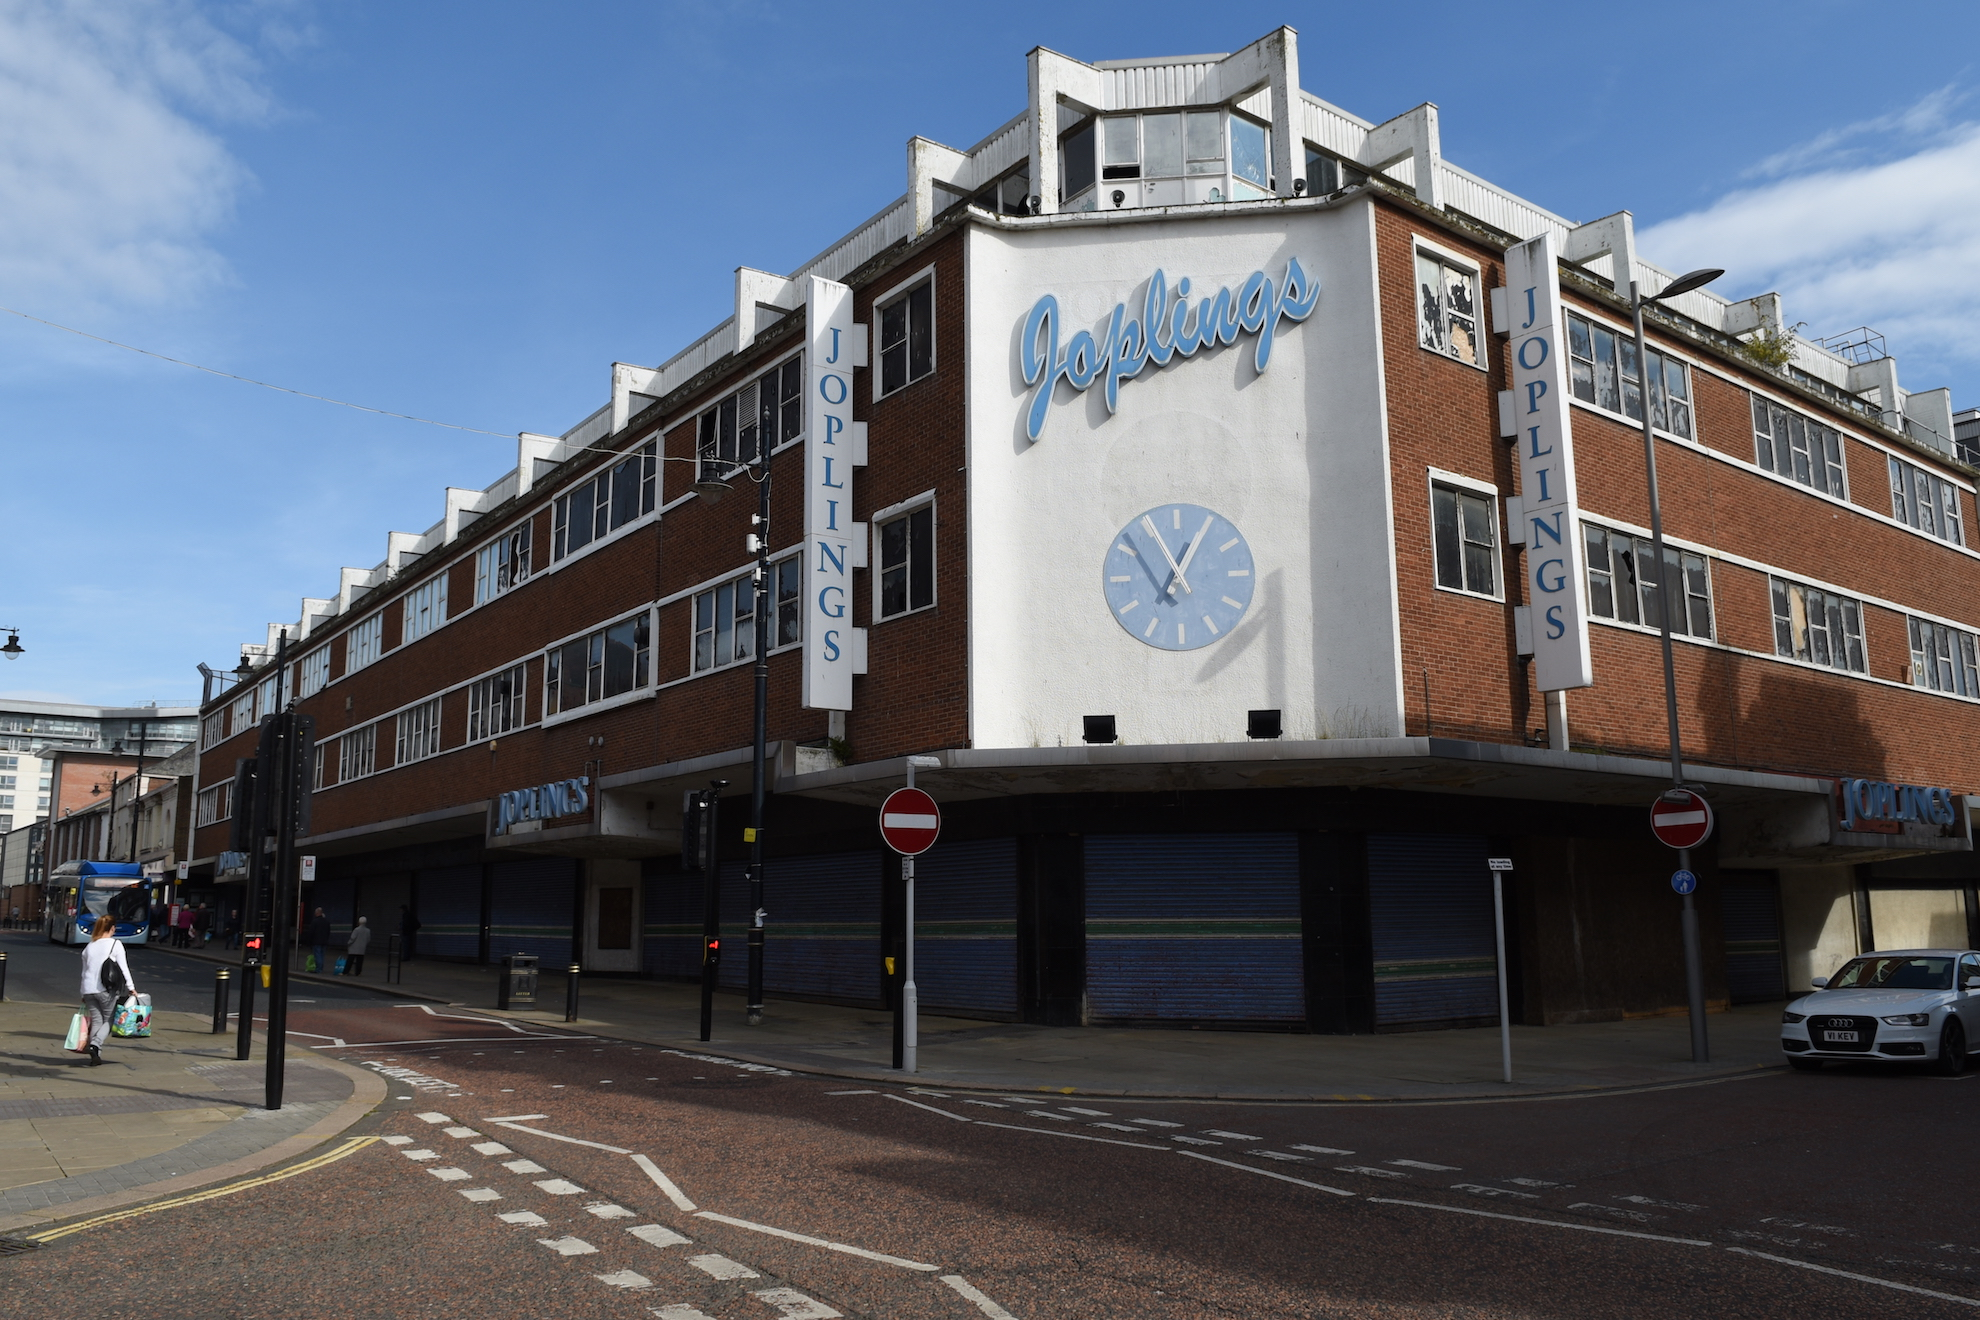 Developer Reveals Plan to turn Sunderland's former Joplings Department Store into Student Flats